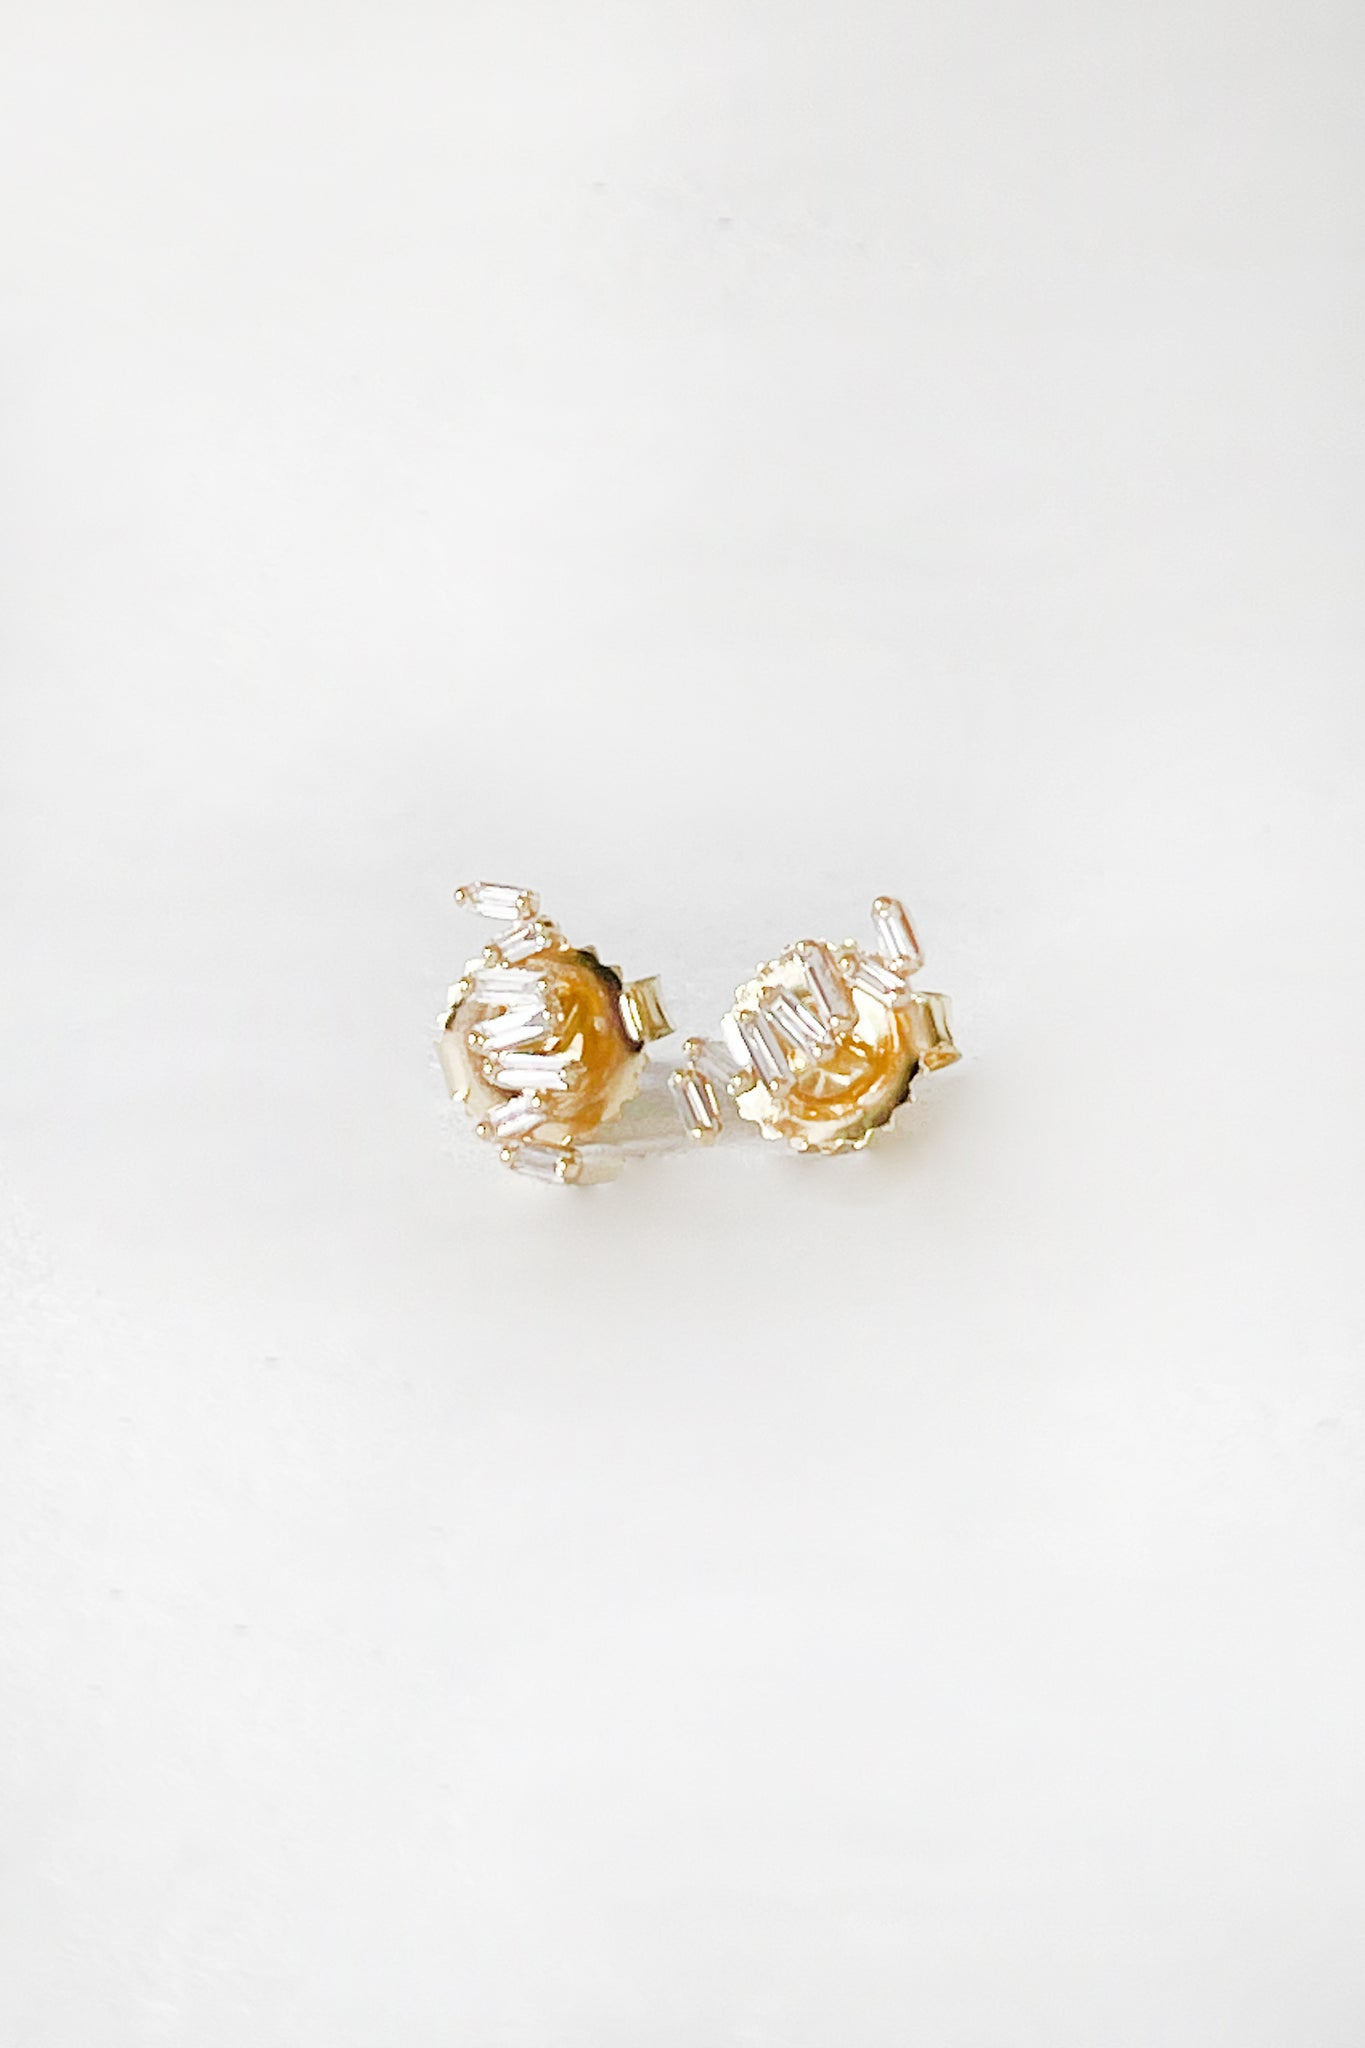 SUZANNE KALAN - fireworks diamond earrings, gold